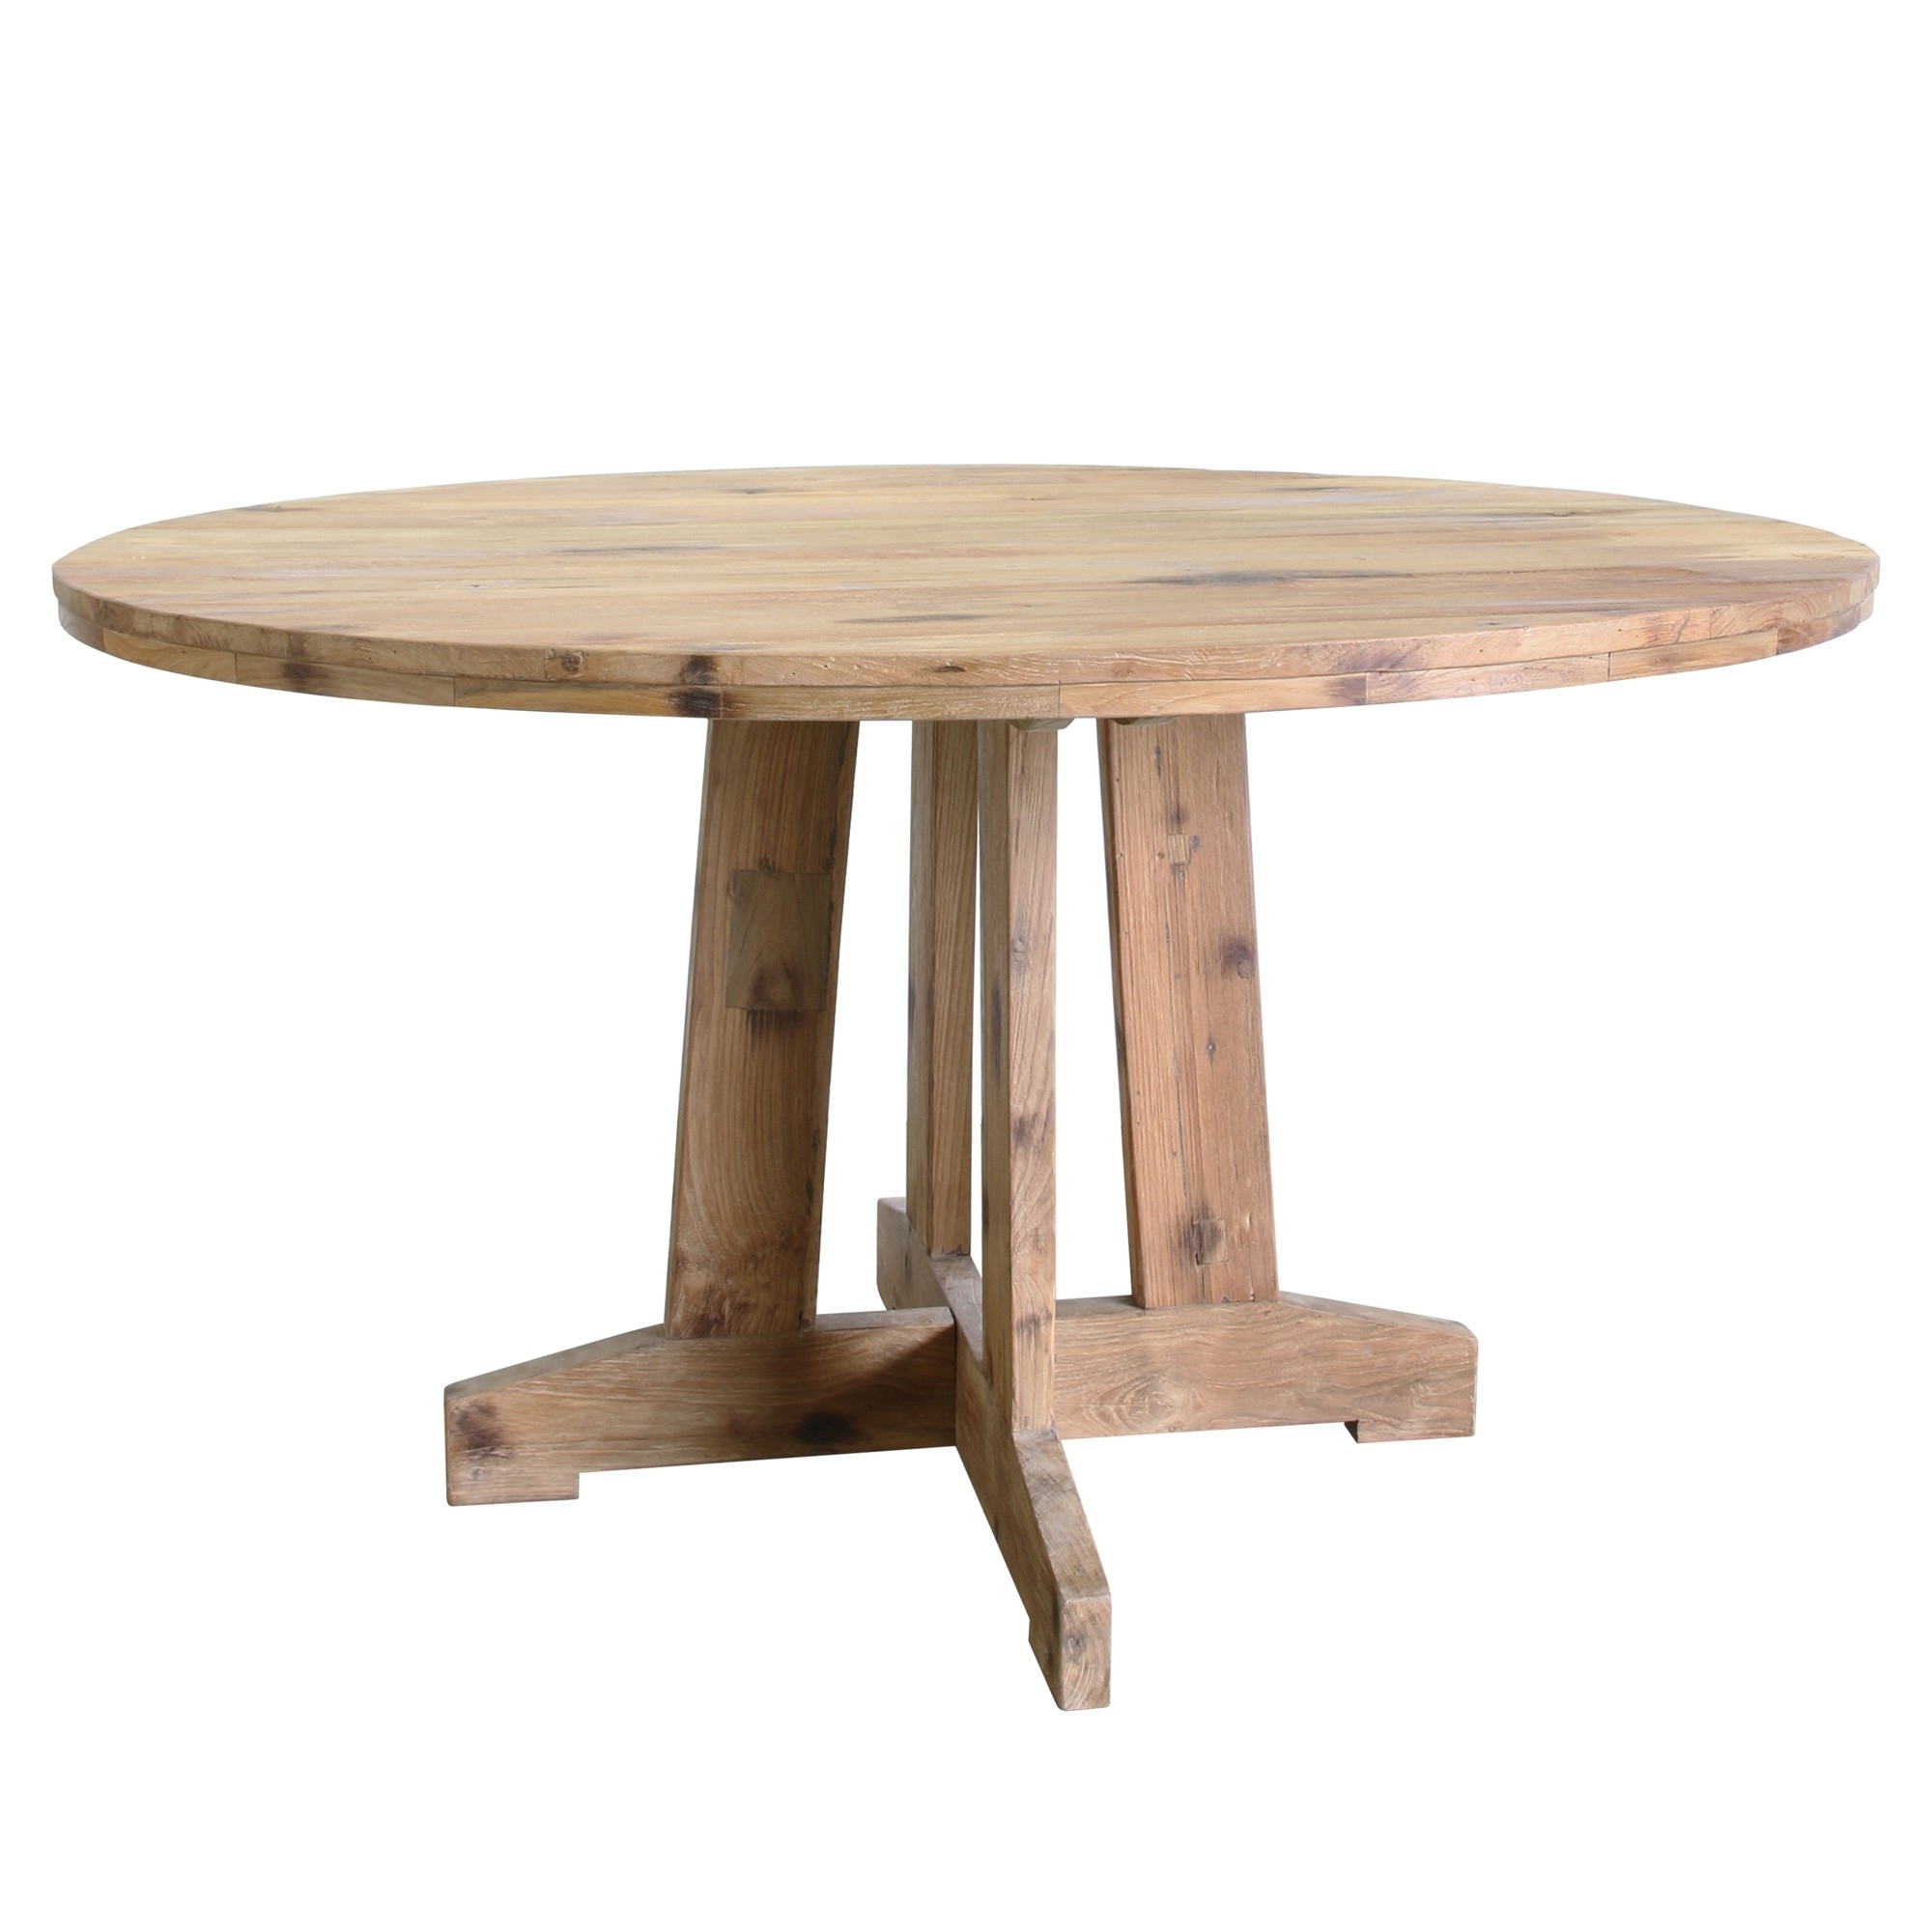 Newest Round Reclaimed Teak Dining Table With Round Teak Dining Tables (Gallery 2 of 25)